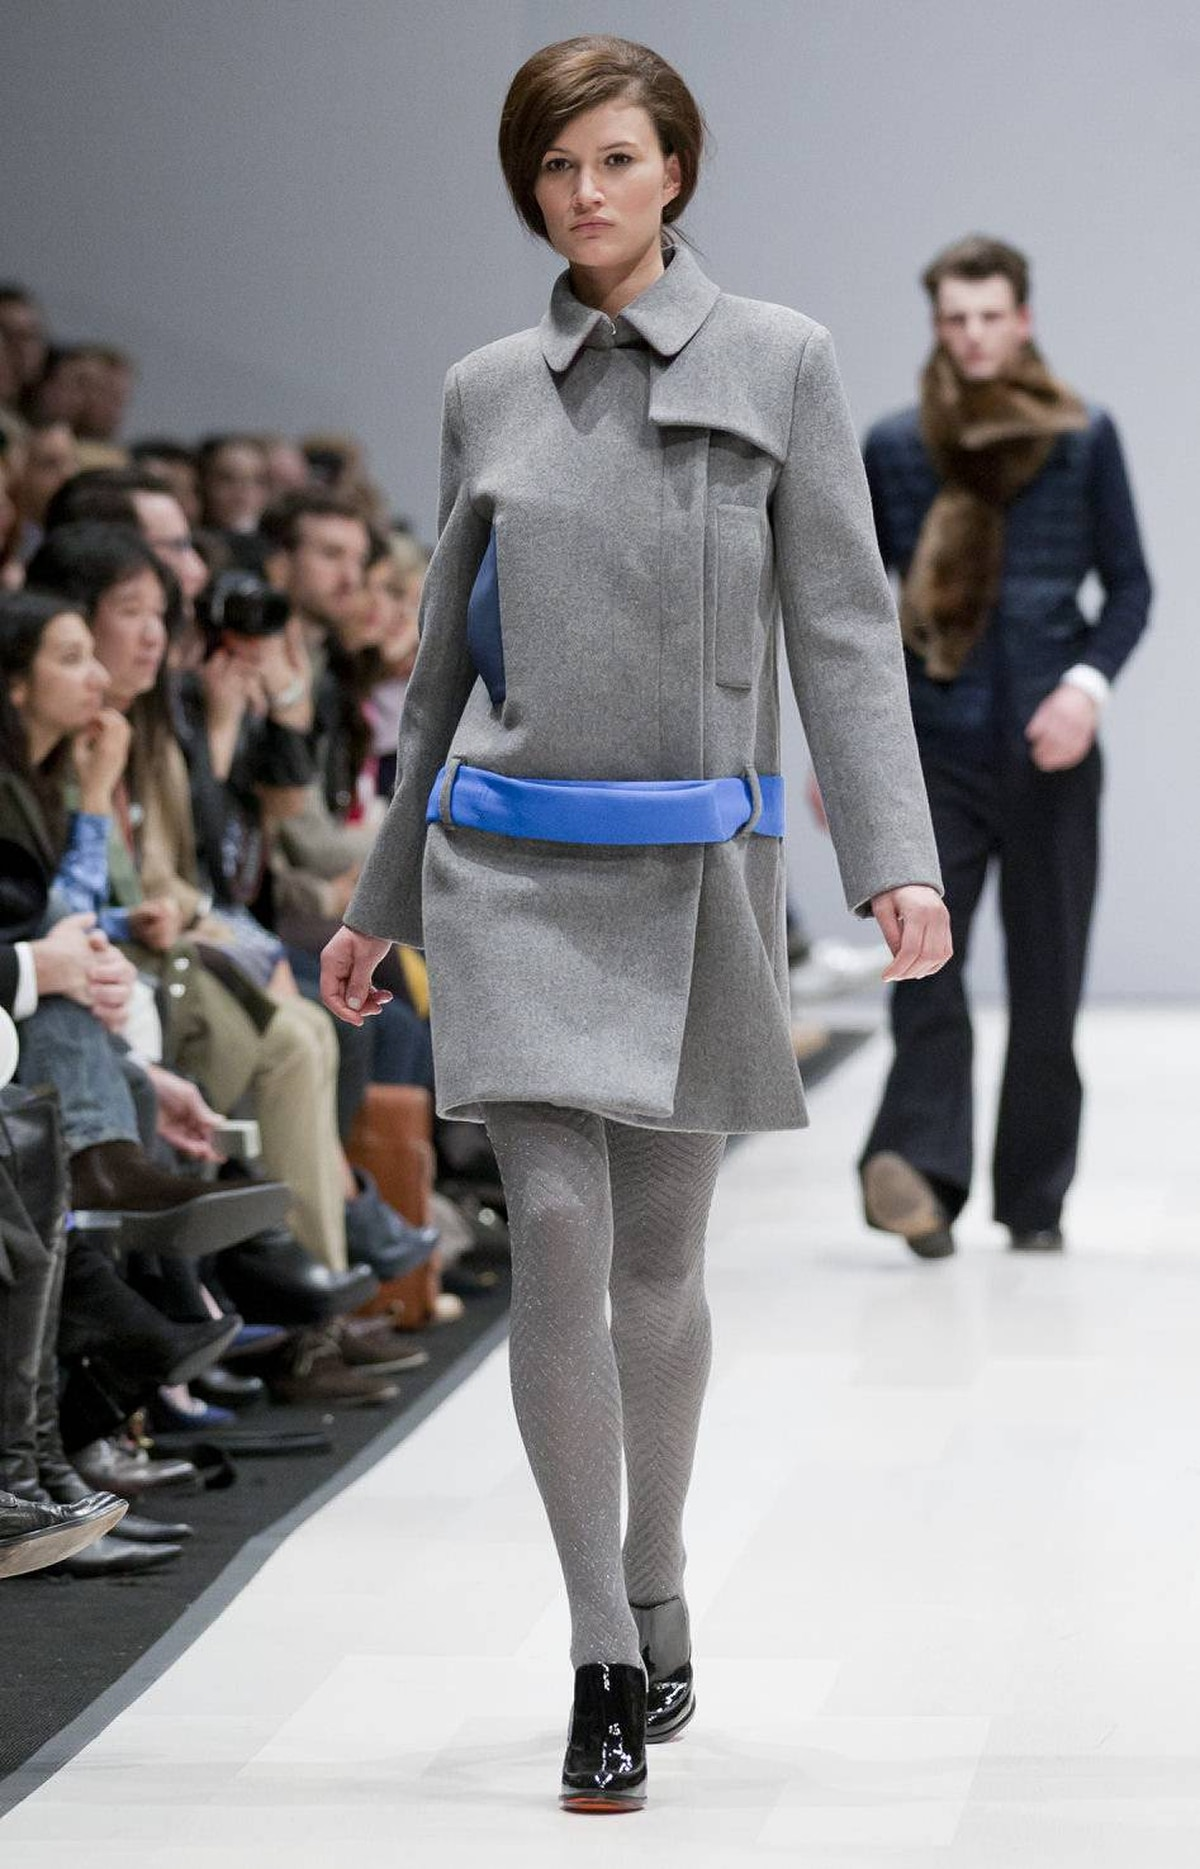 The palette stuck closely to traditional fall hues like navy, burgundy and burnt orange, but some pieces got an injection of bright colour from accessories, such as the blue neoprene belt on this grey topper.